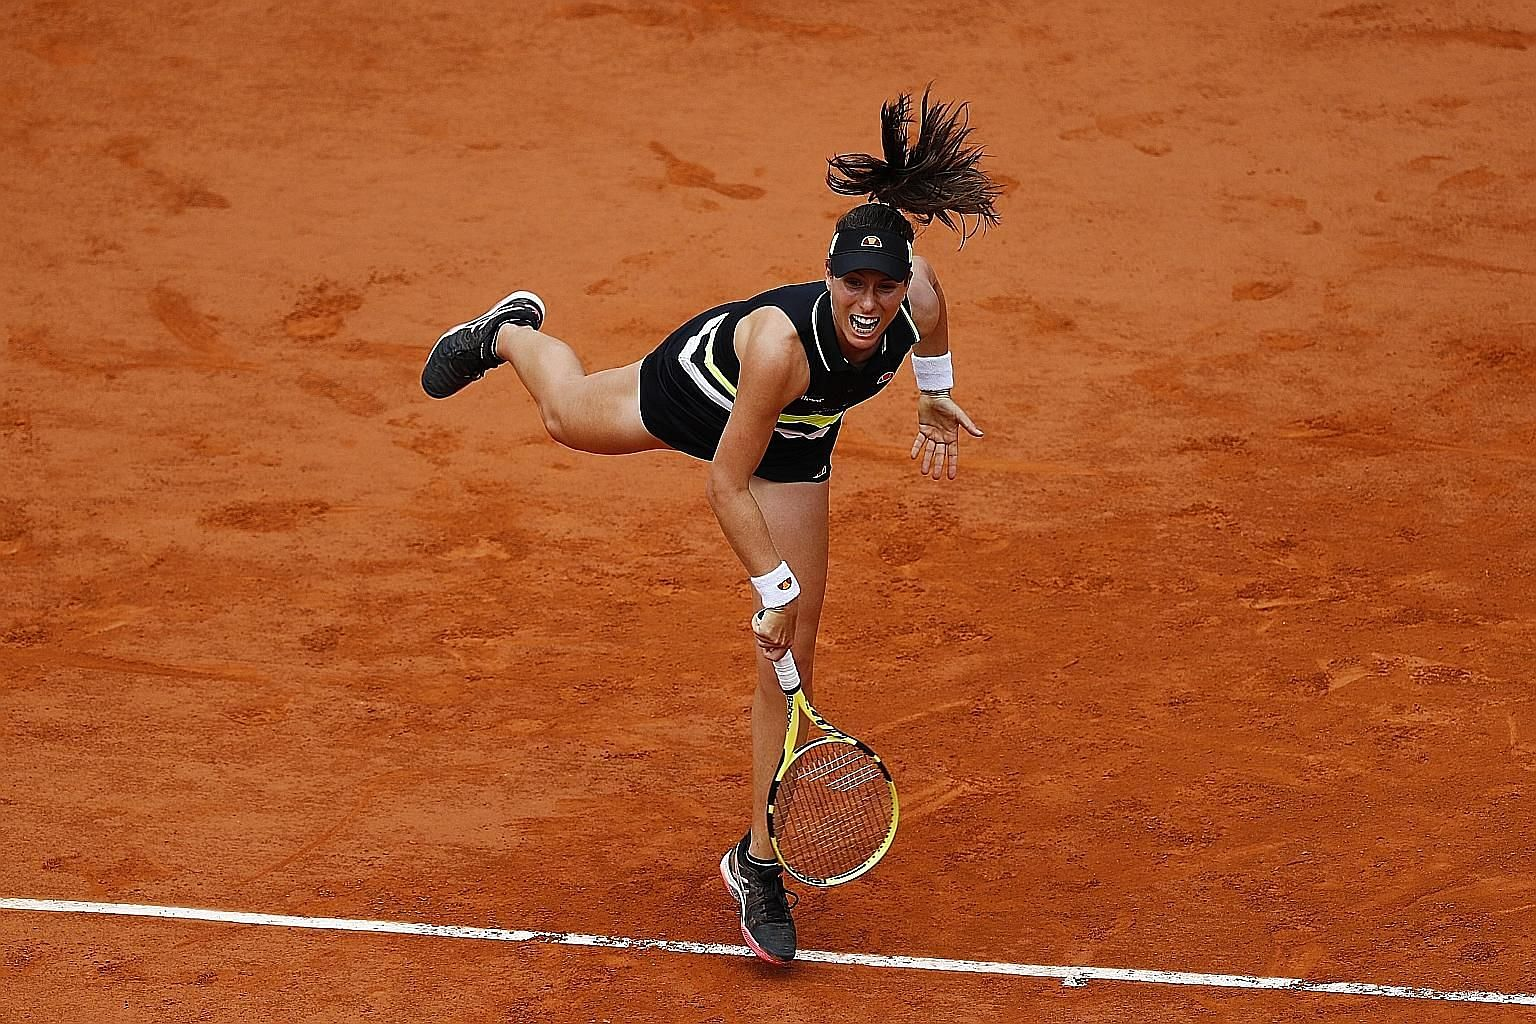 Johanna Konta serving to American Sloane Stephens in their French Open quarter-final yesterday. She won 6-1, 6-4 to become the first British semi-finalist since 1983.